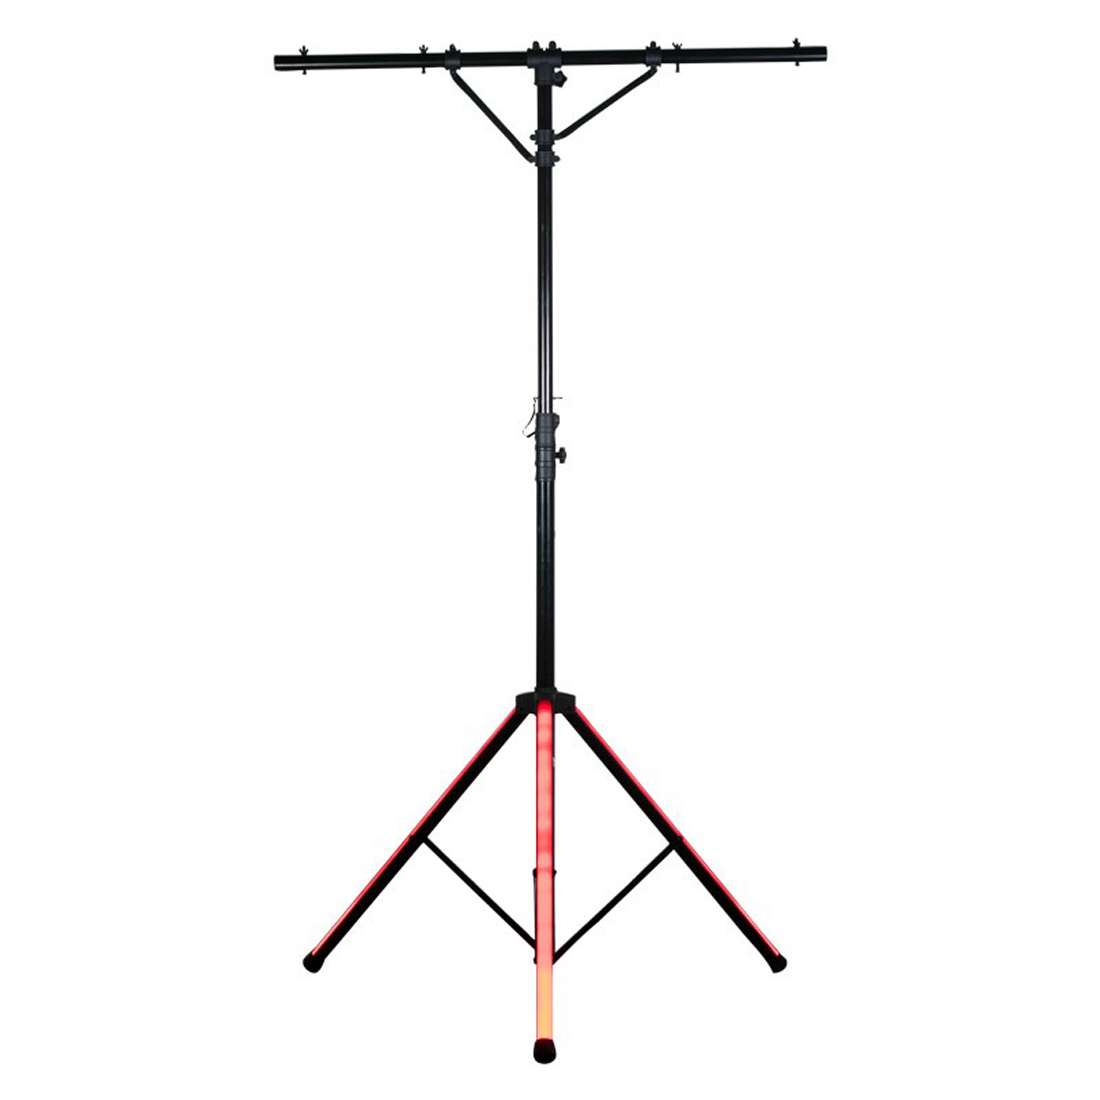 LTS-3 Lighting Stand